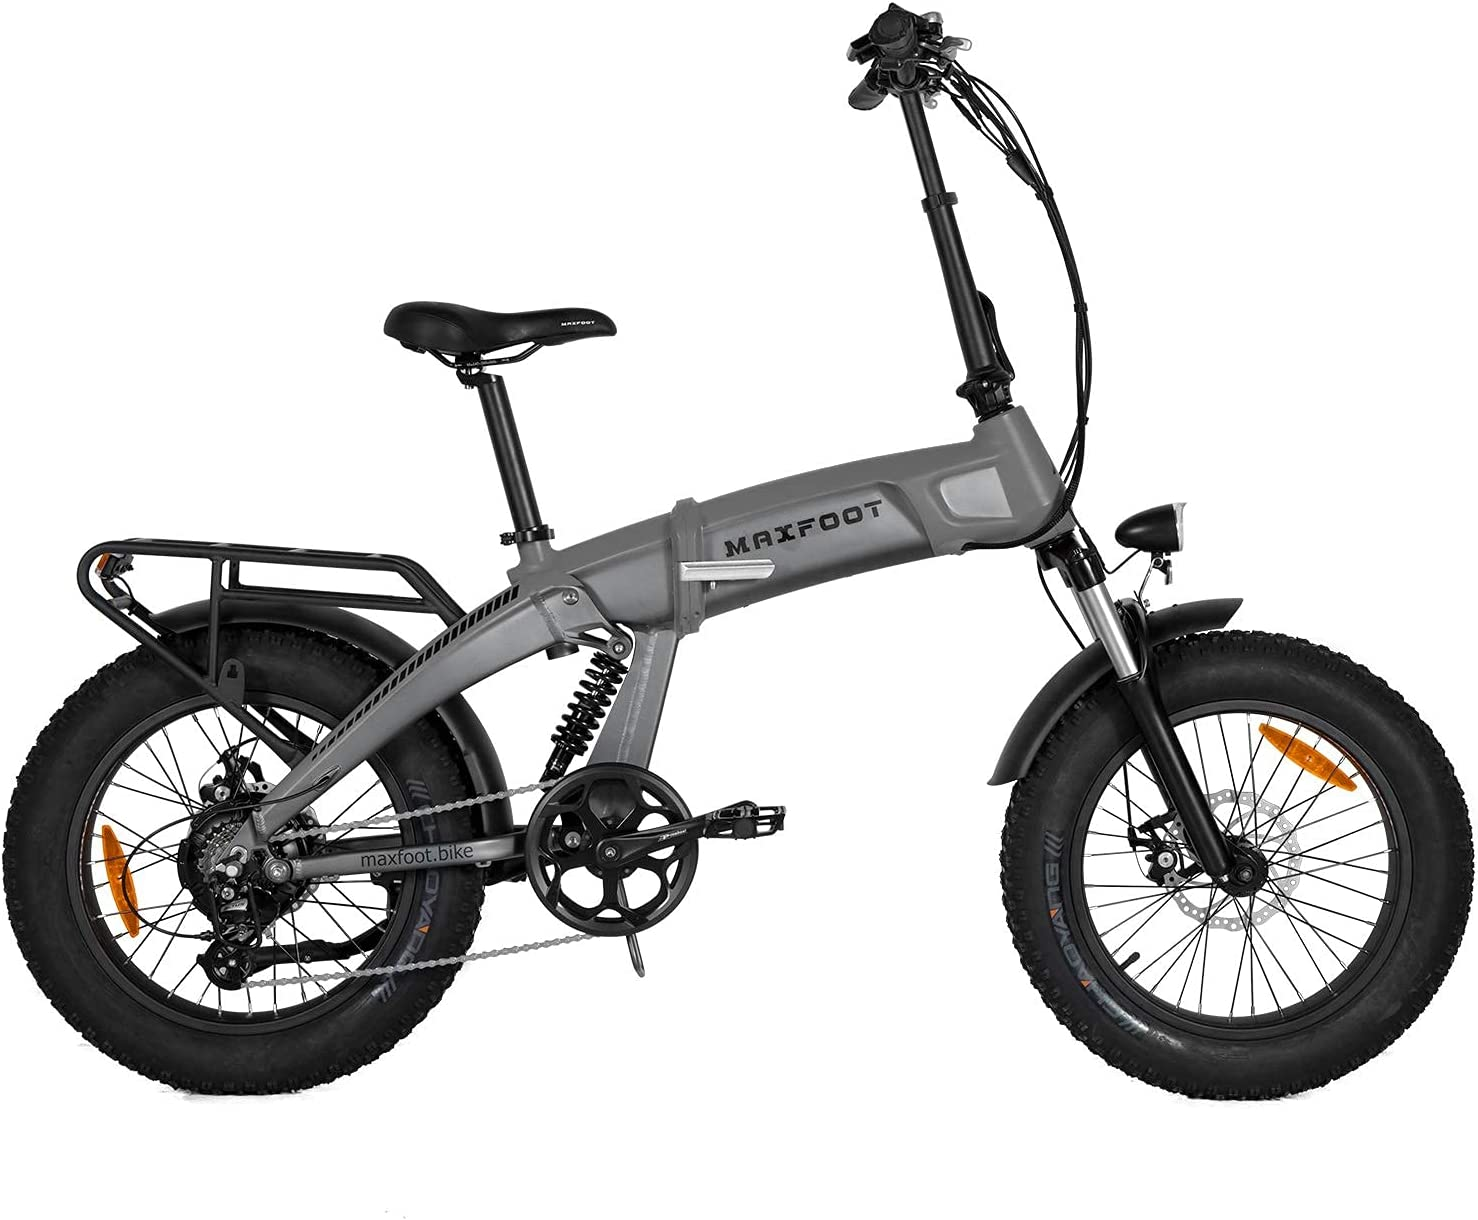 Maxfoot 1000W Folding Electric Bike Challenge the lowest Special Campaign price Suspens for Dual 20